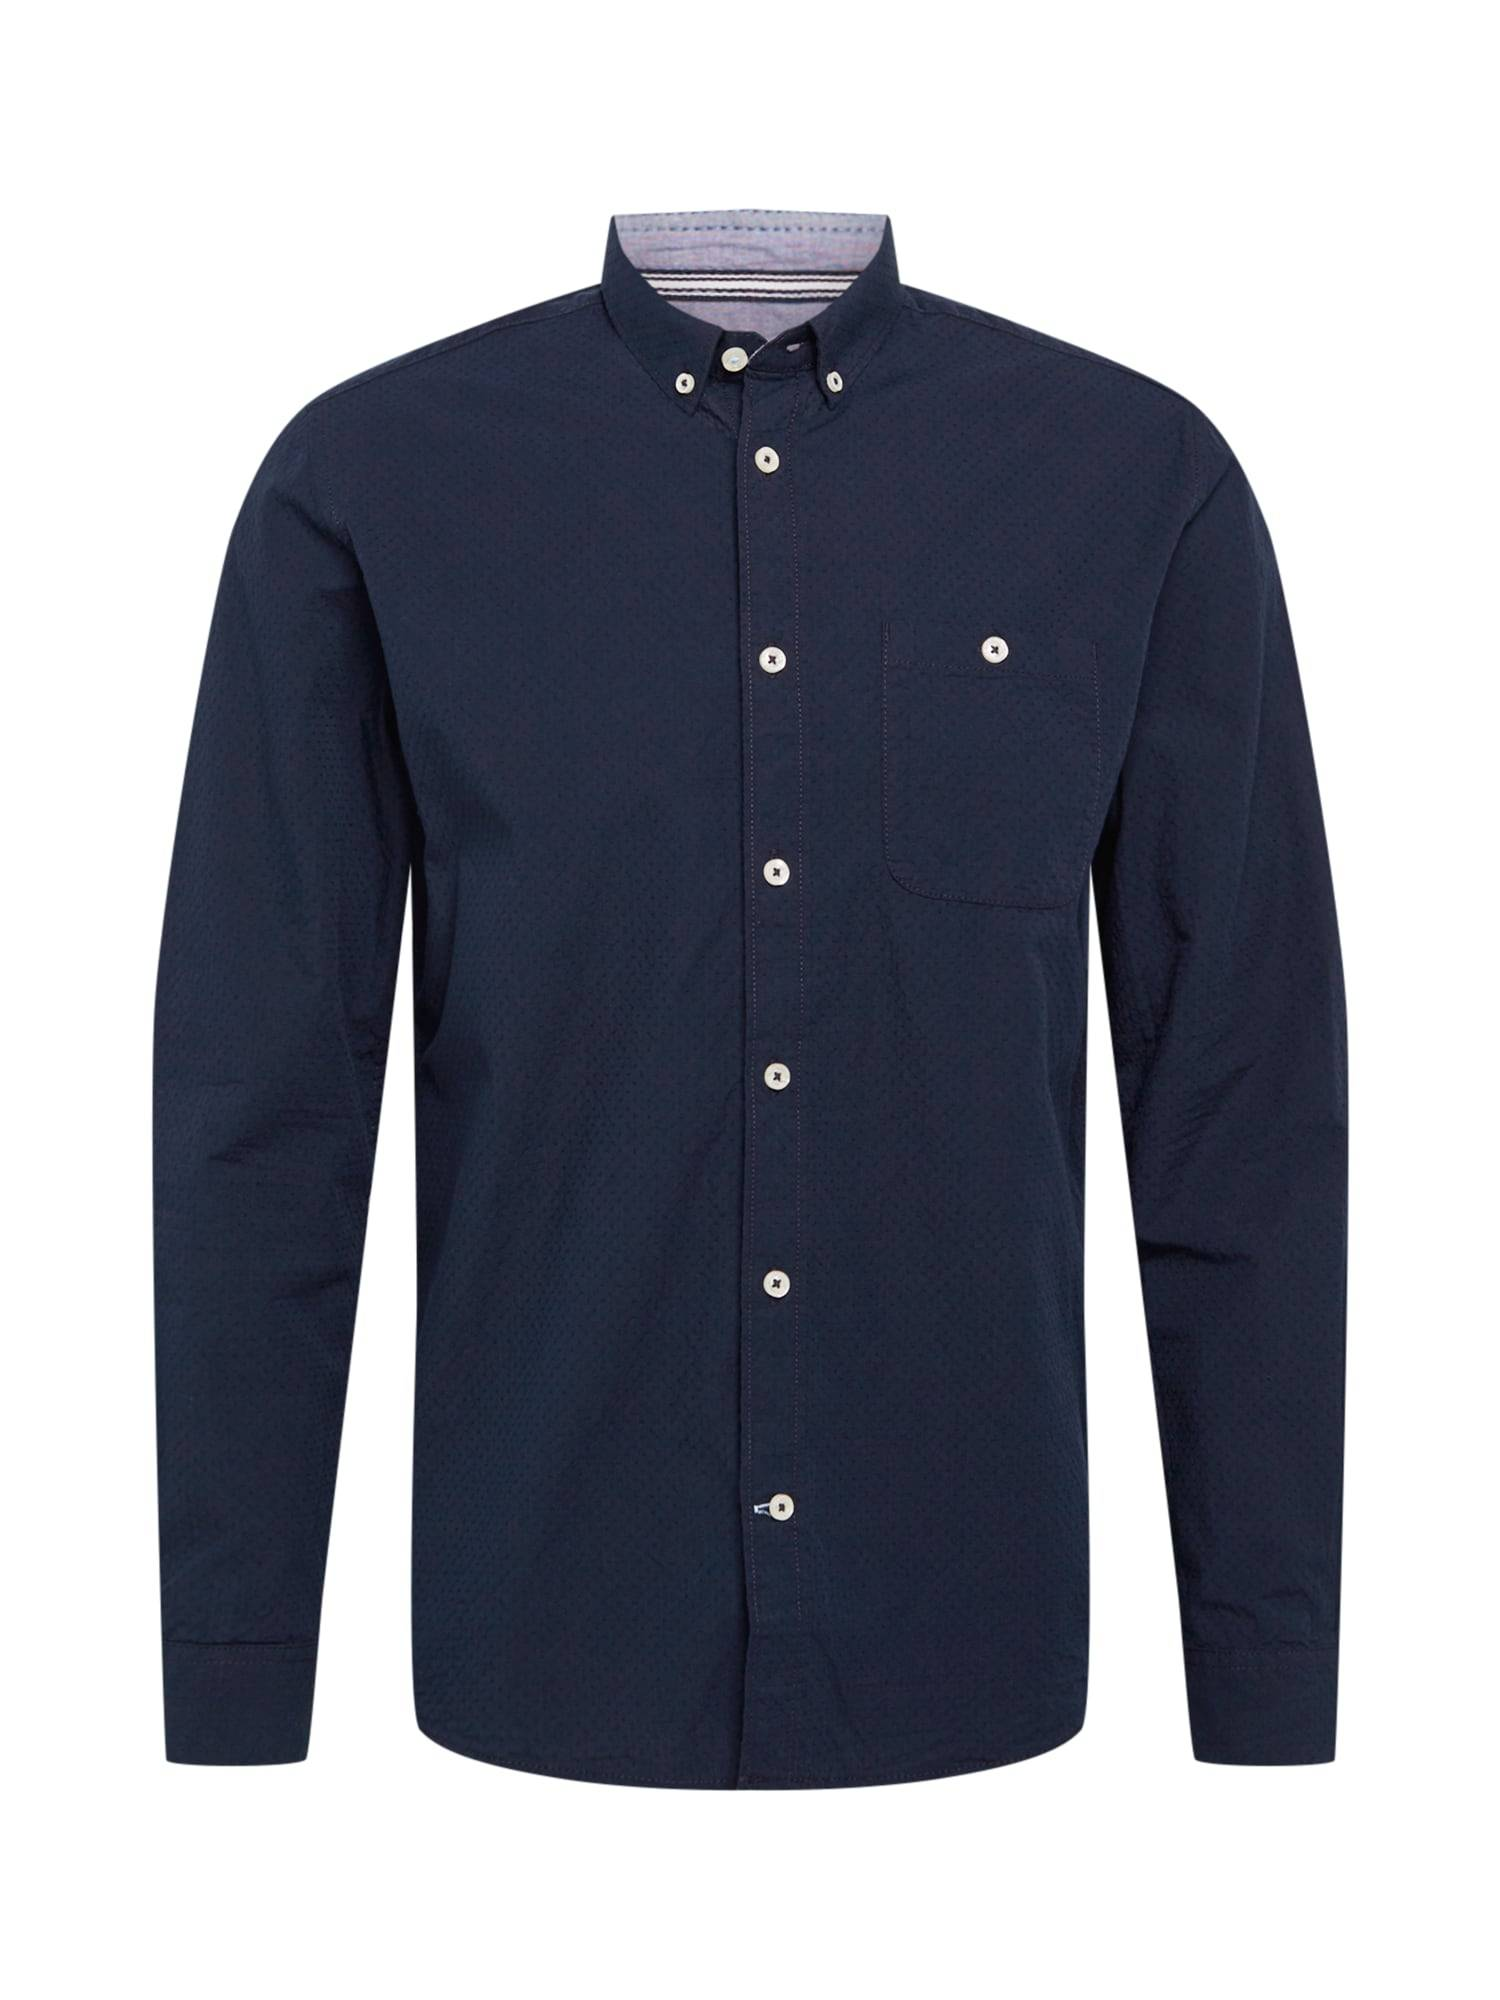 TOM TAILOR Chemise  - Bleu - Taille: S - male